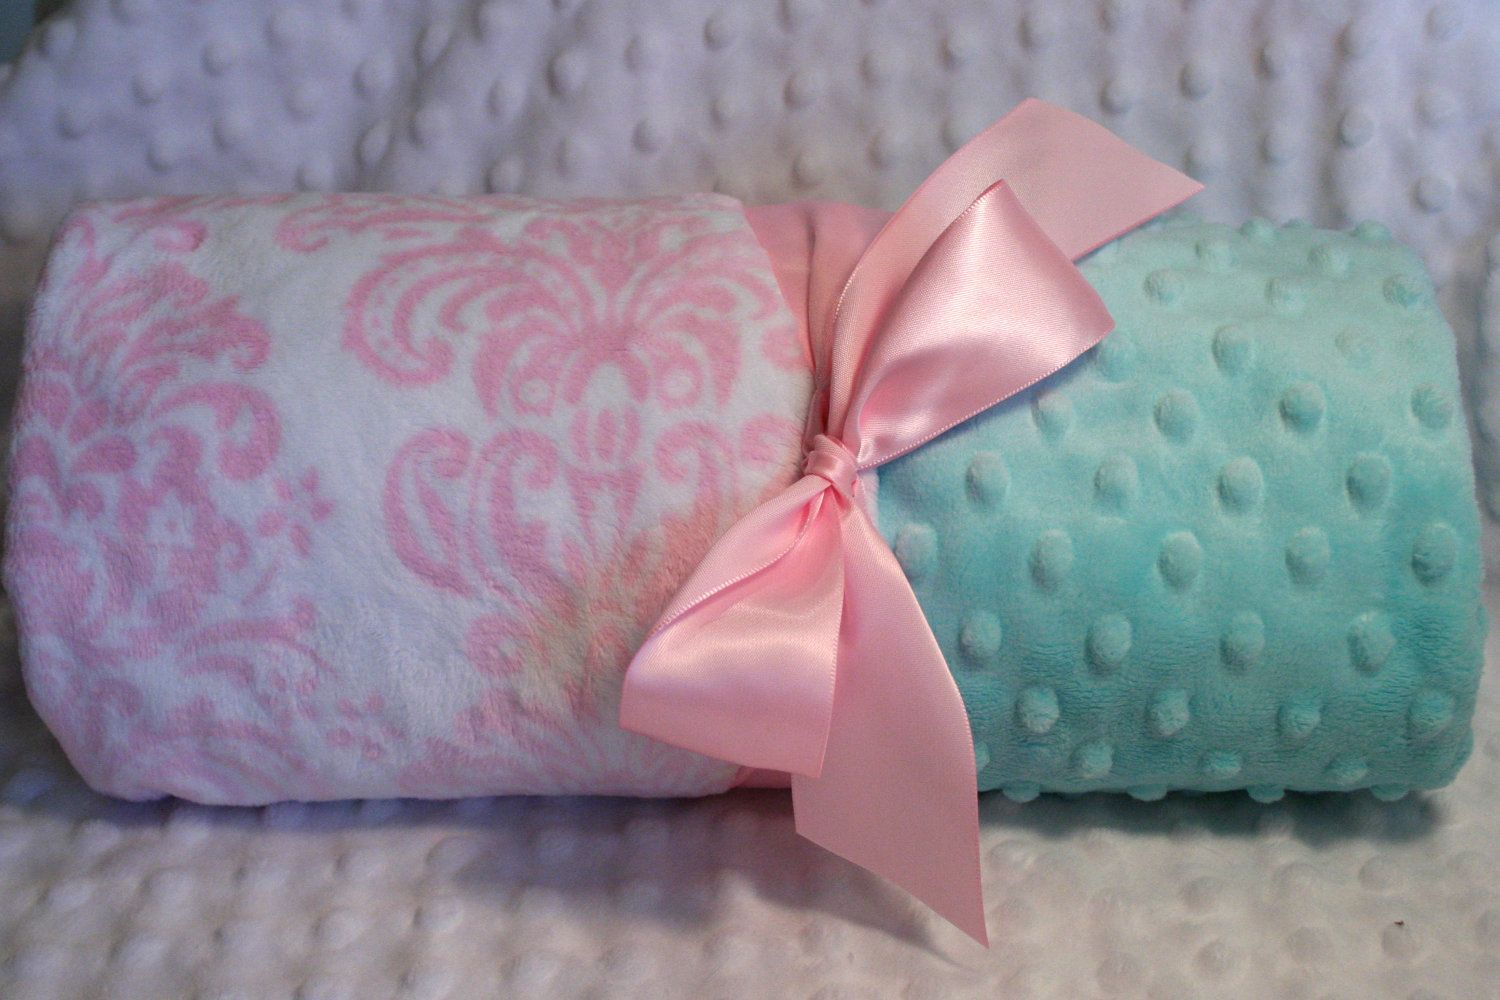 Minky Baby Blanket - Aqua / Tiffany Blue / Turquoise with Pink ...